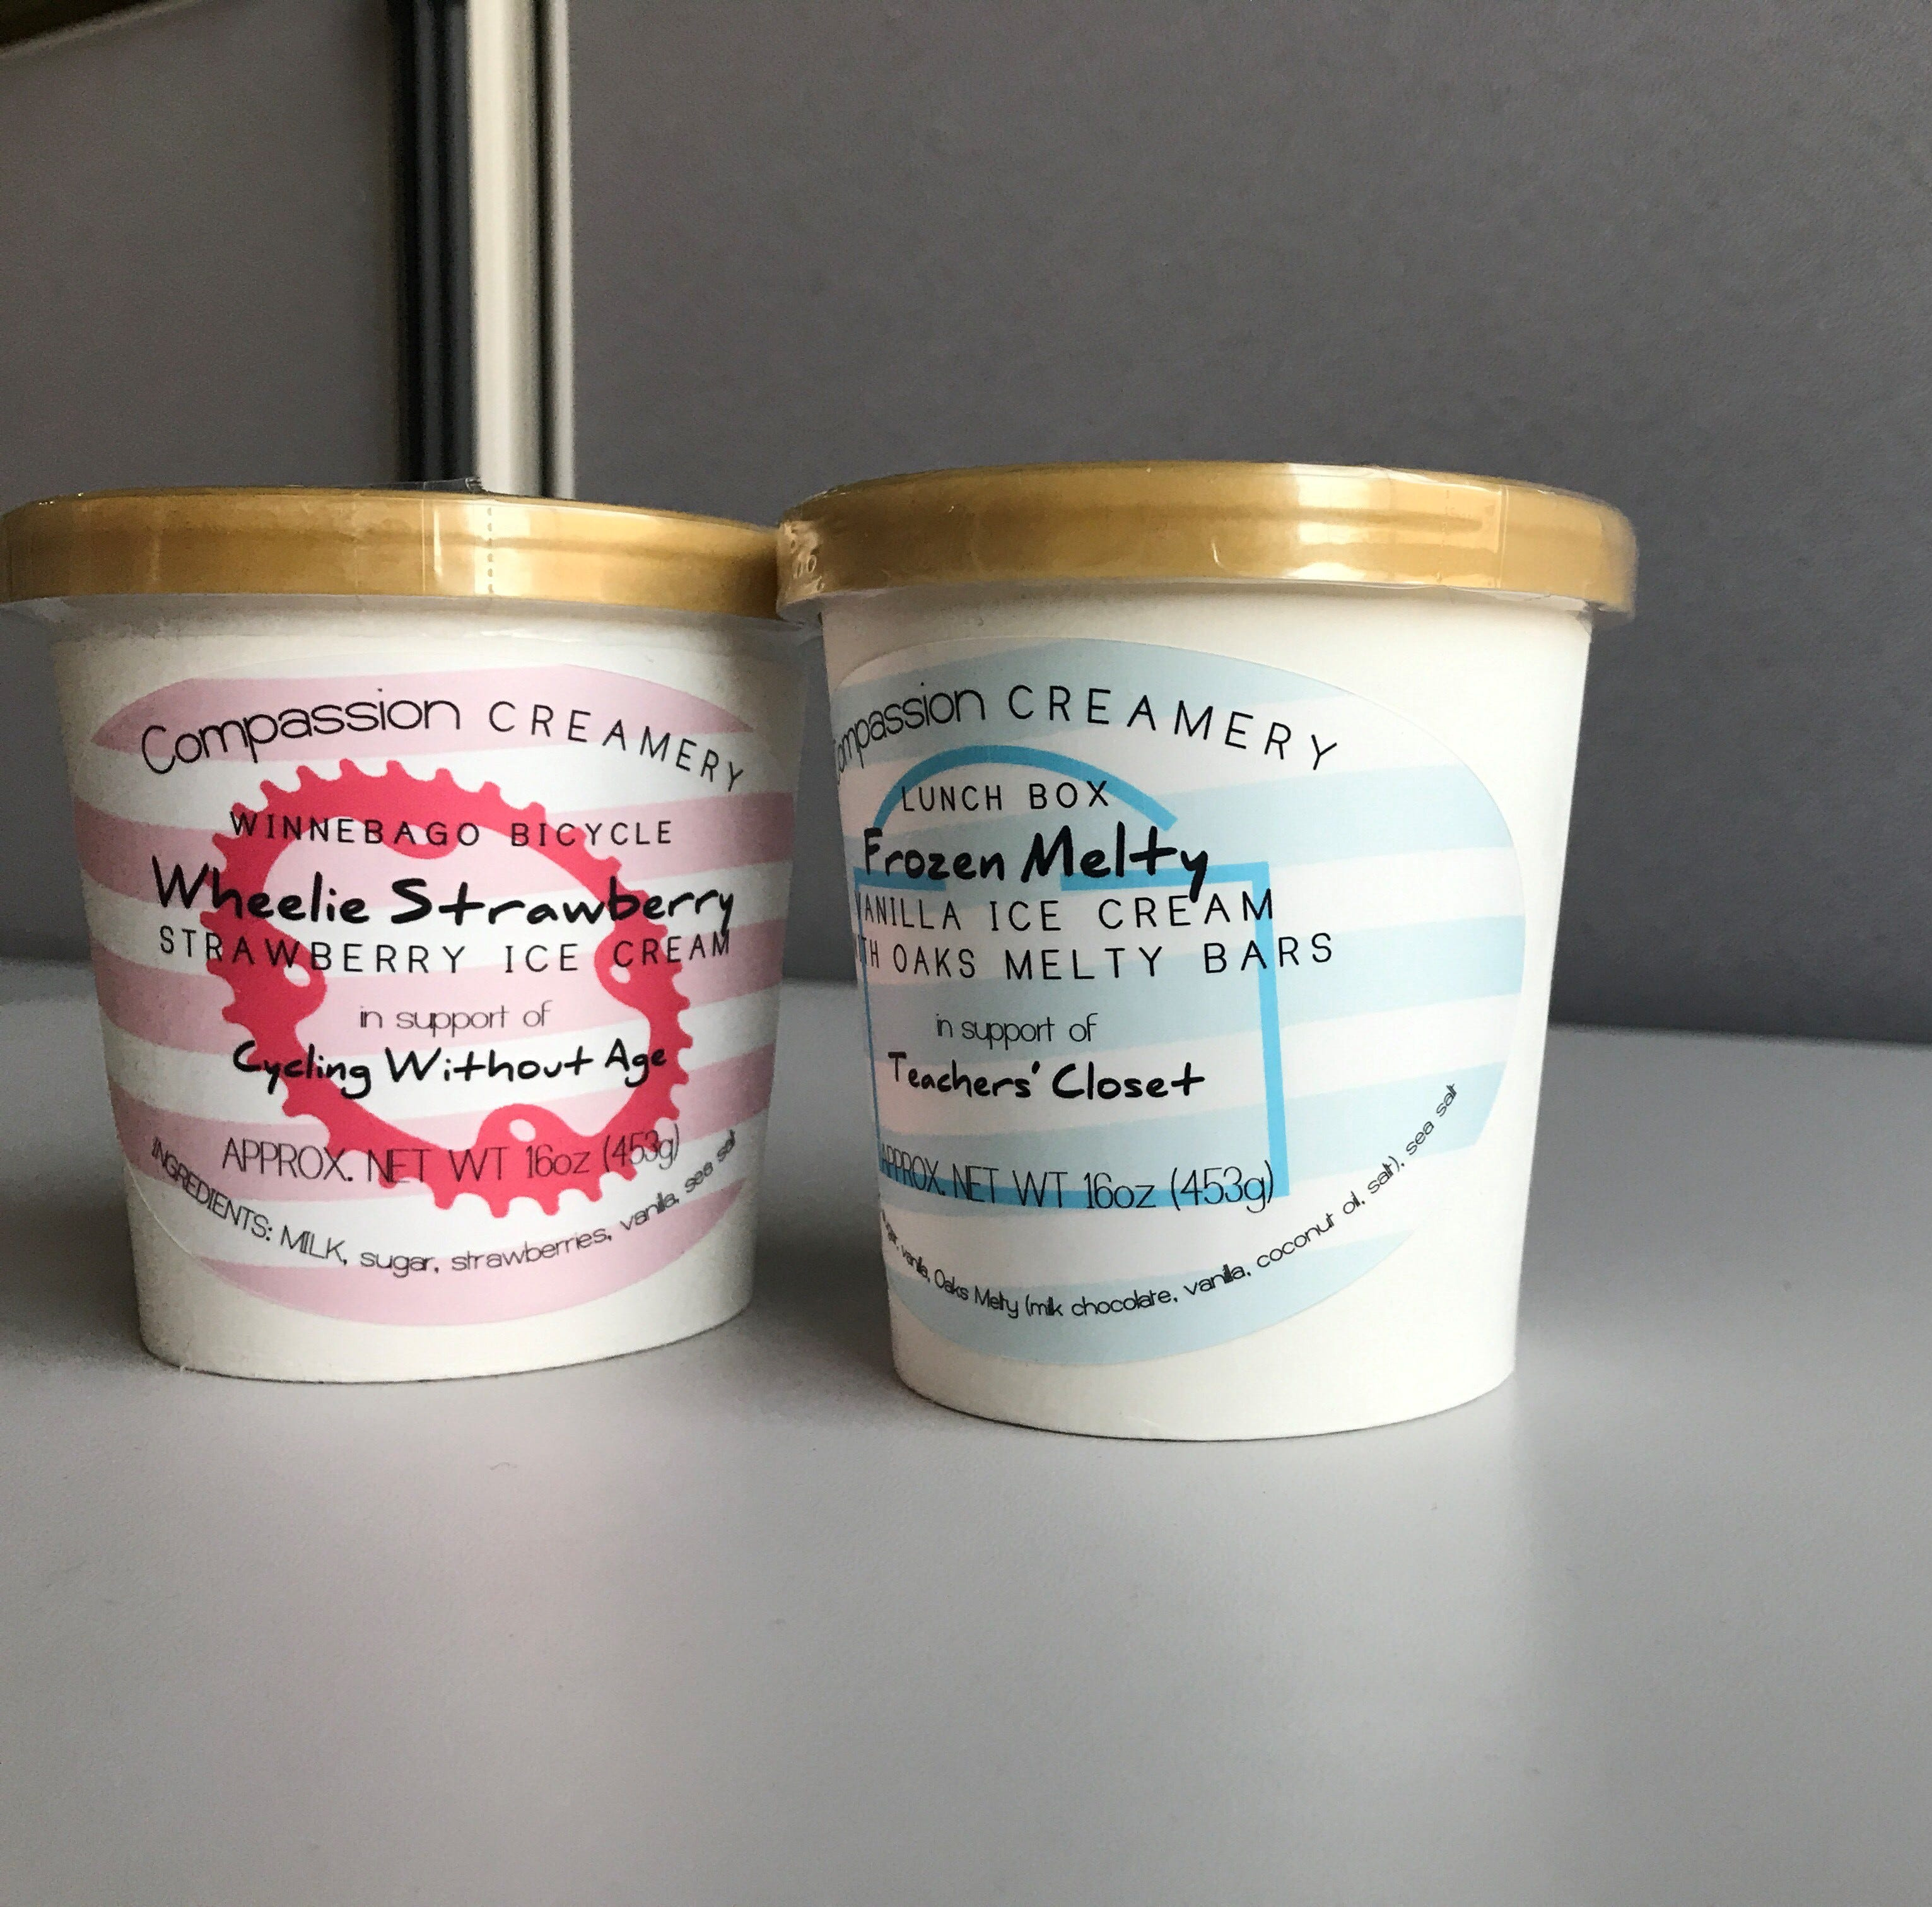 Oshkosh small businesses create Compassion Creamery to benefit local charities | Streetwise